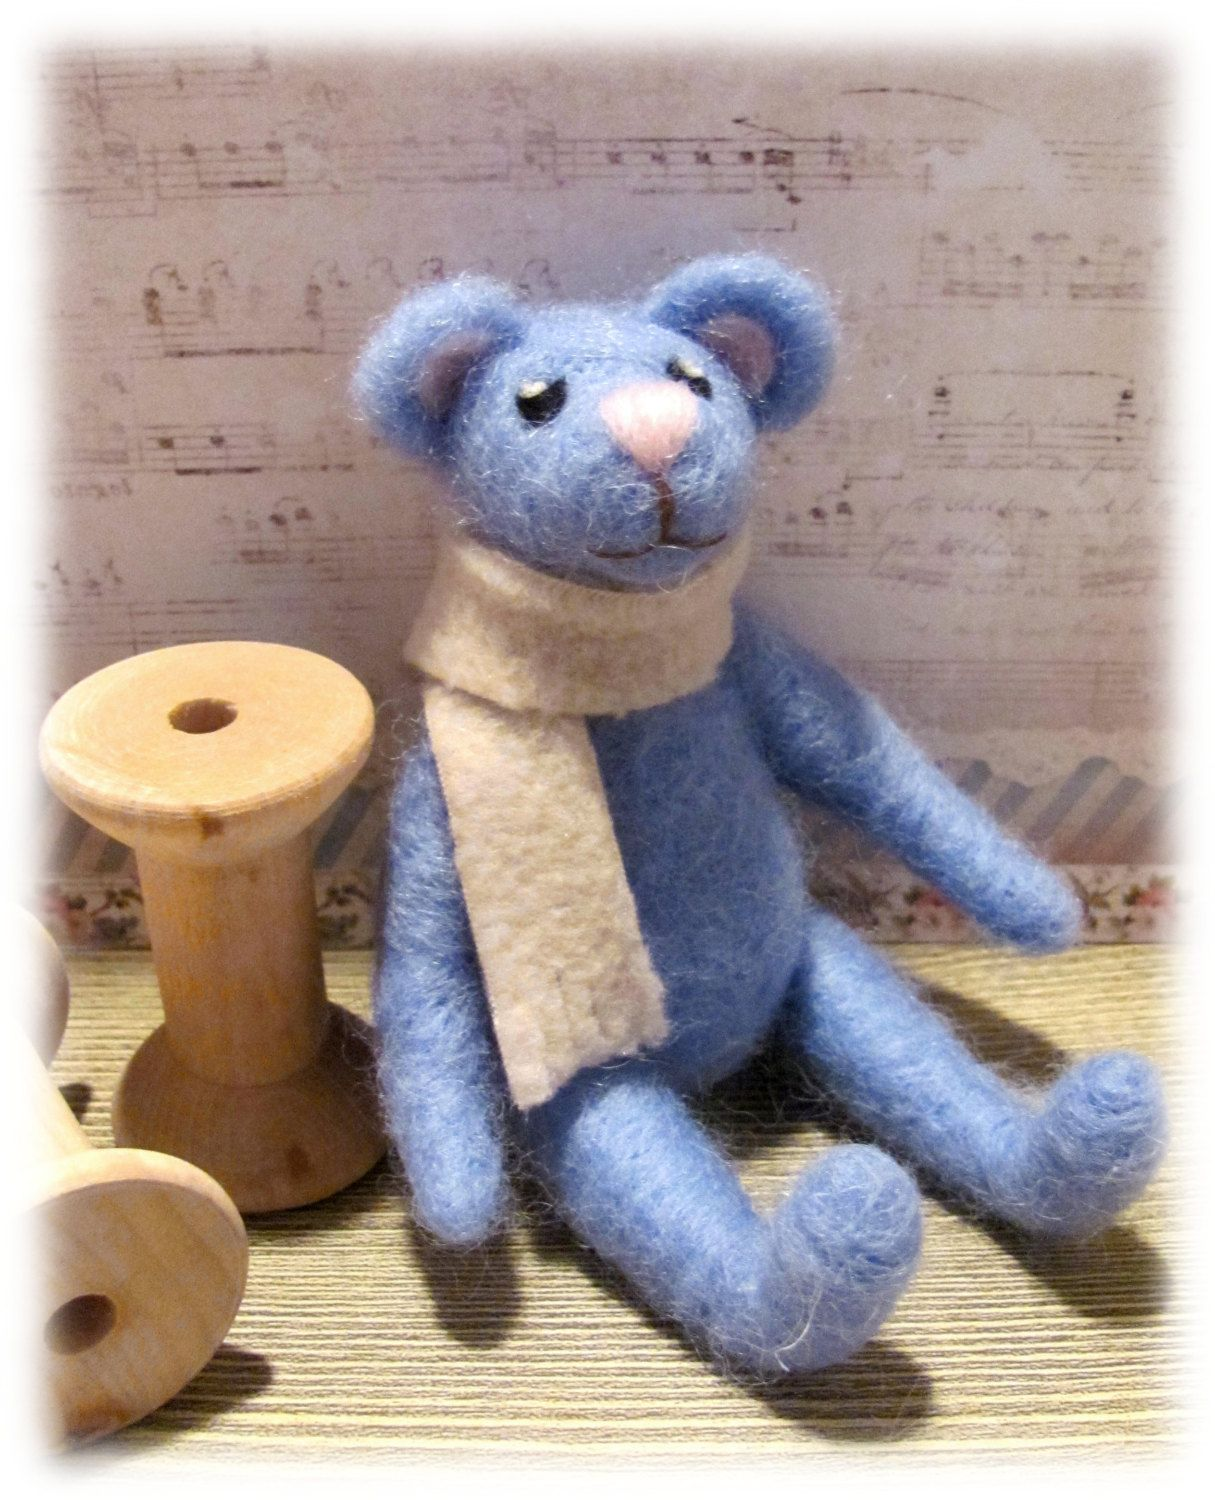 Teddy bear toys images  Miniature Teddy Bear Needle Felt Small Teddy collectors OOAK by